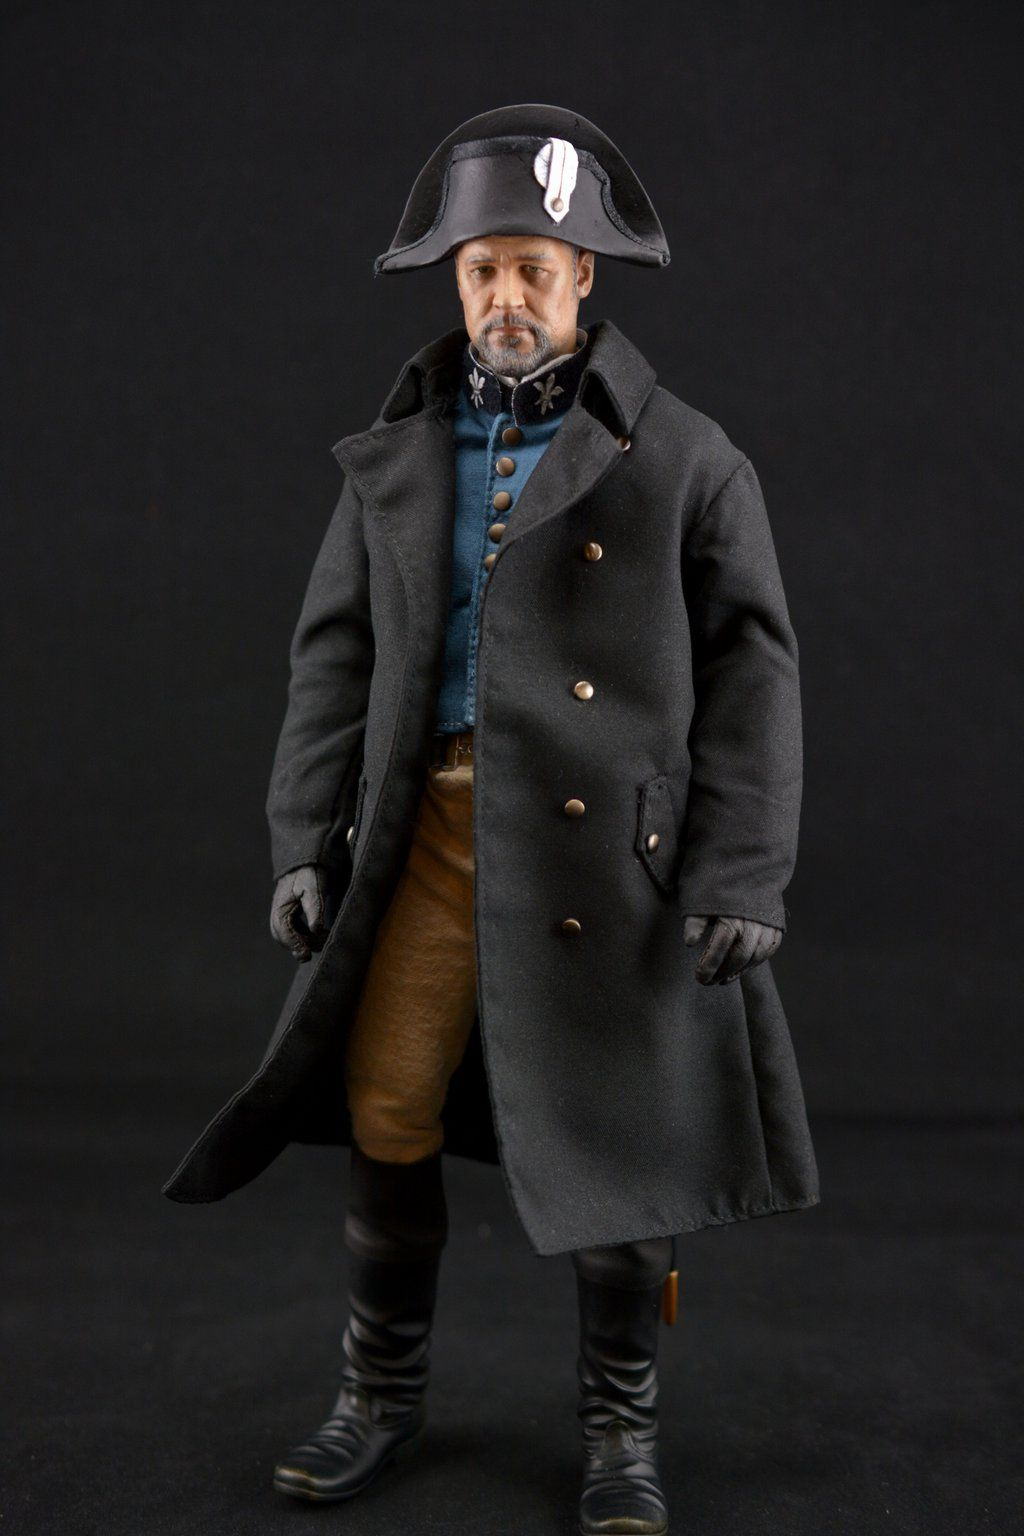 Les Miserables - Javert Custom 1/6th Figure by stanley ...